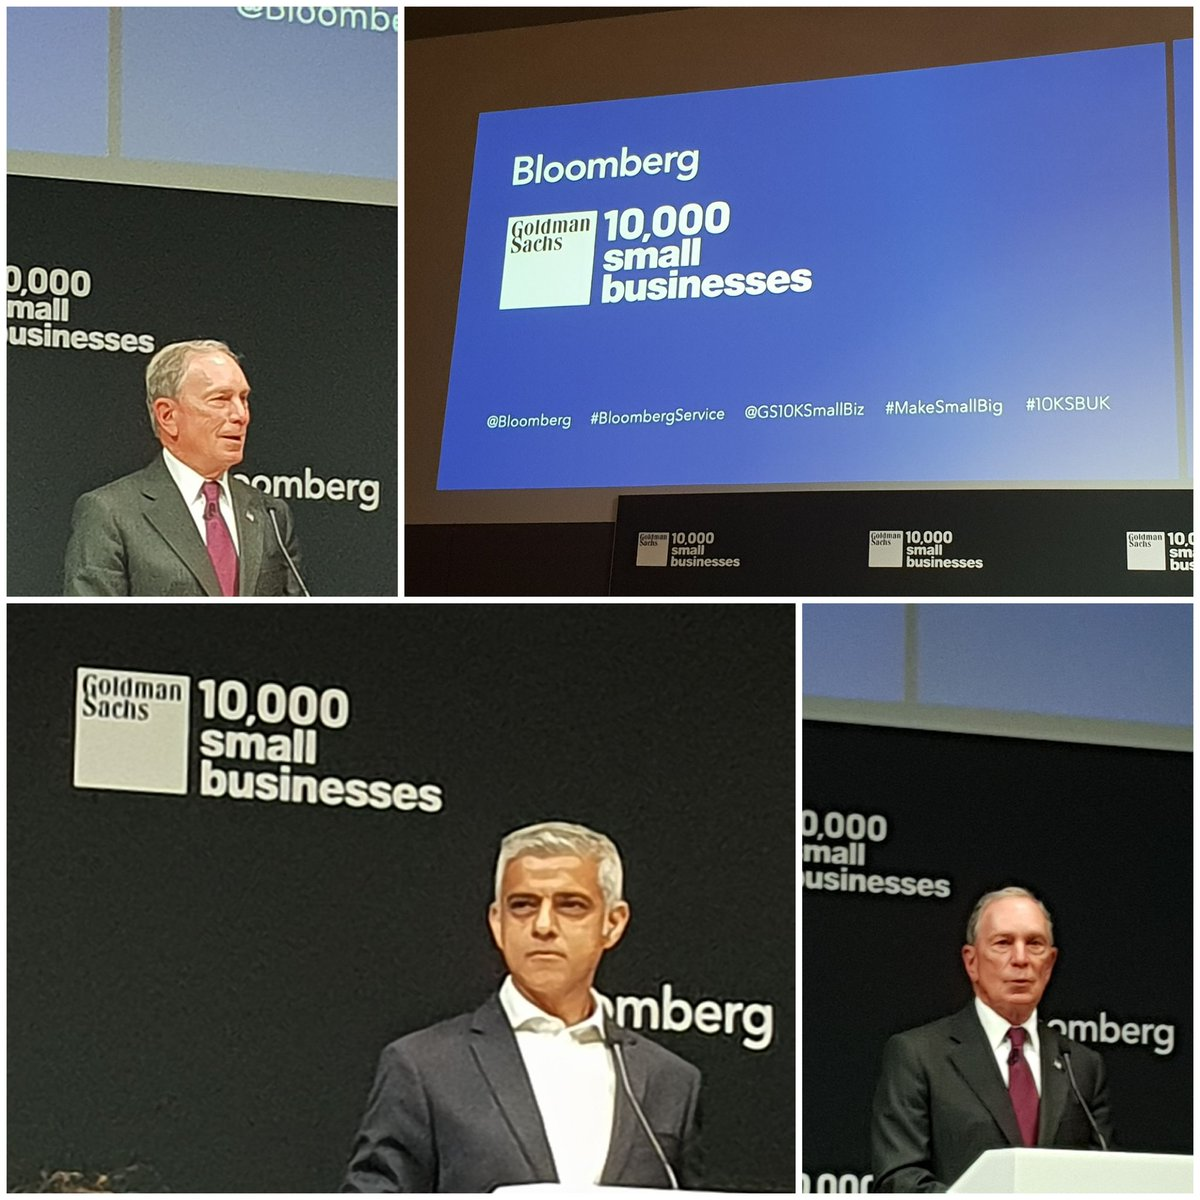 At the incredible new @Bloomberg HQ with @GS10KSmallBiz rethinking productivity, with insights from @SadiqKhan and @MikeBloomberg #makesmallbig #10KSBUK<br>http://pic.twitter.com/7wQ2lMKCVr